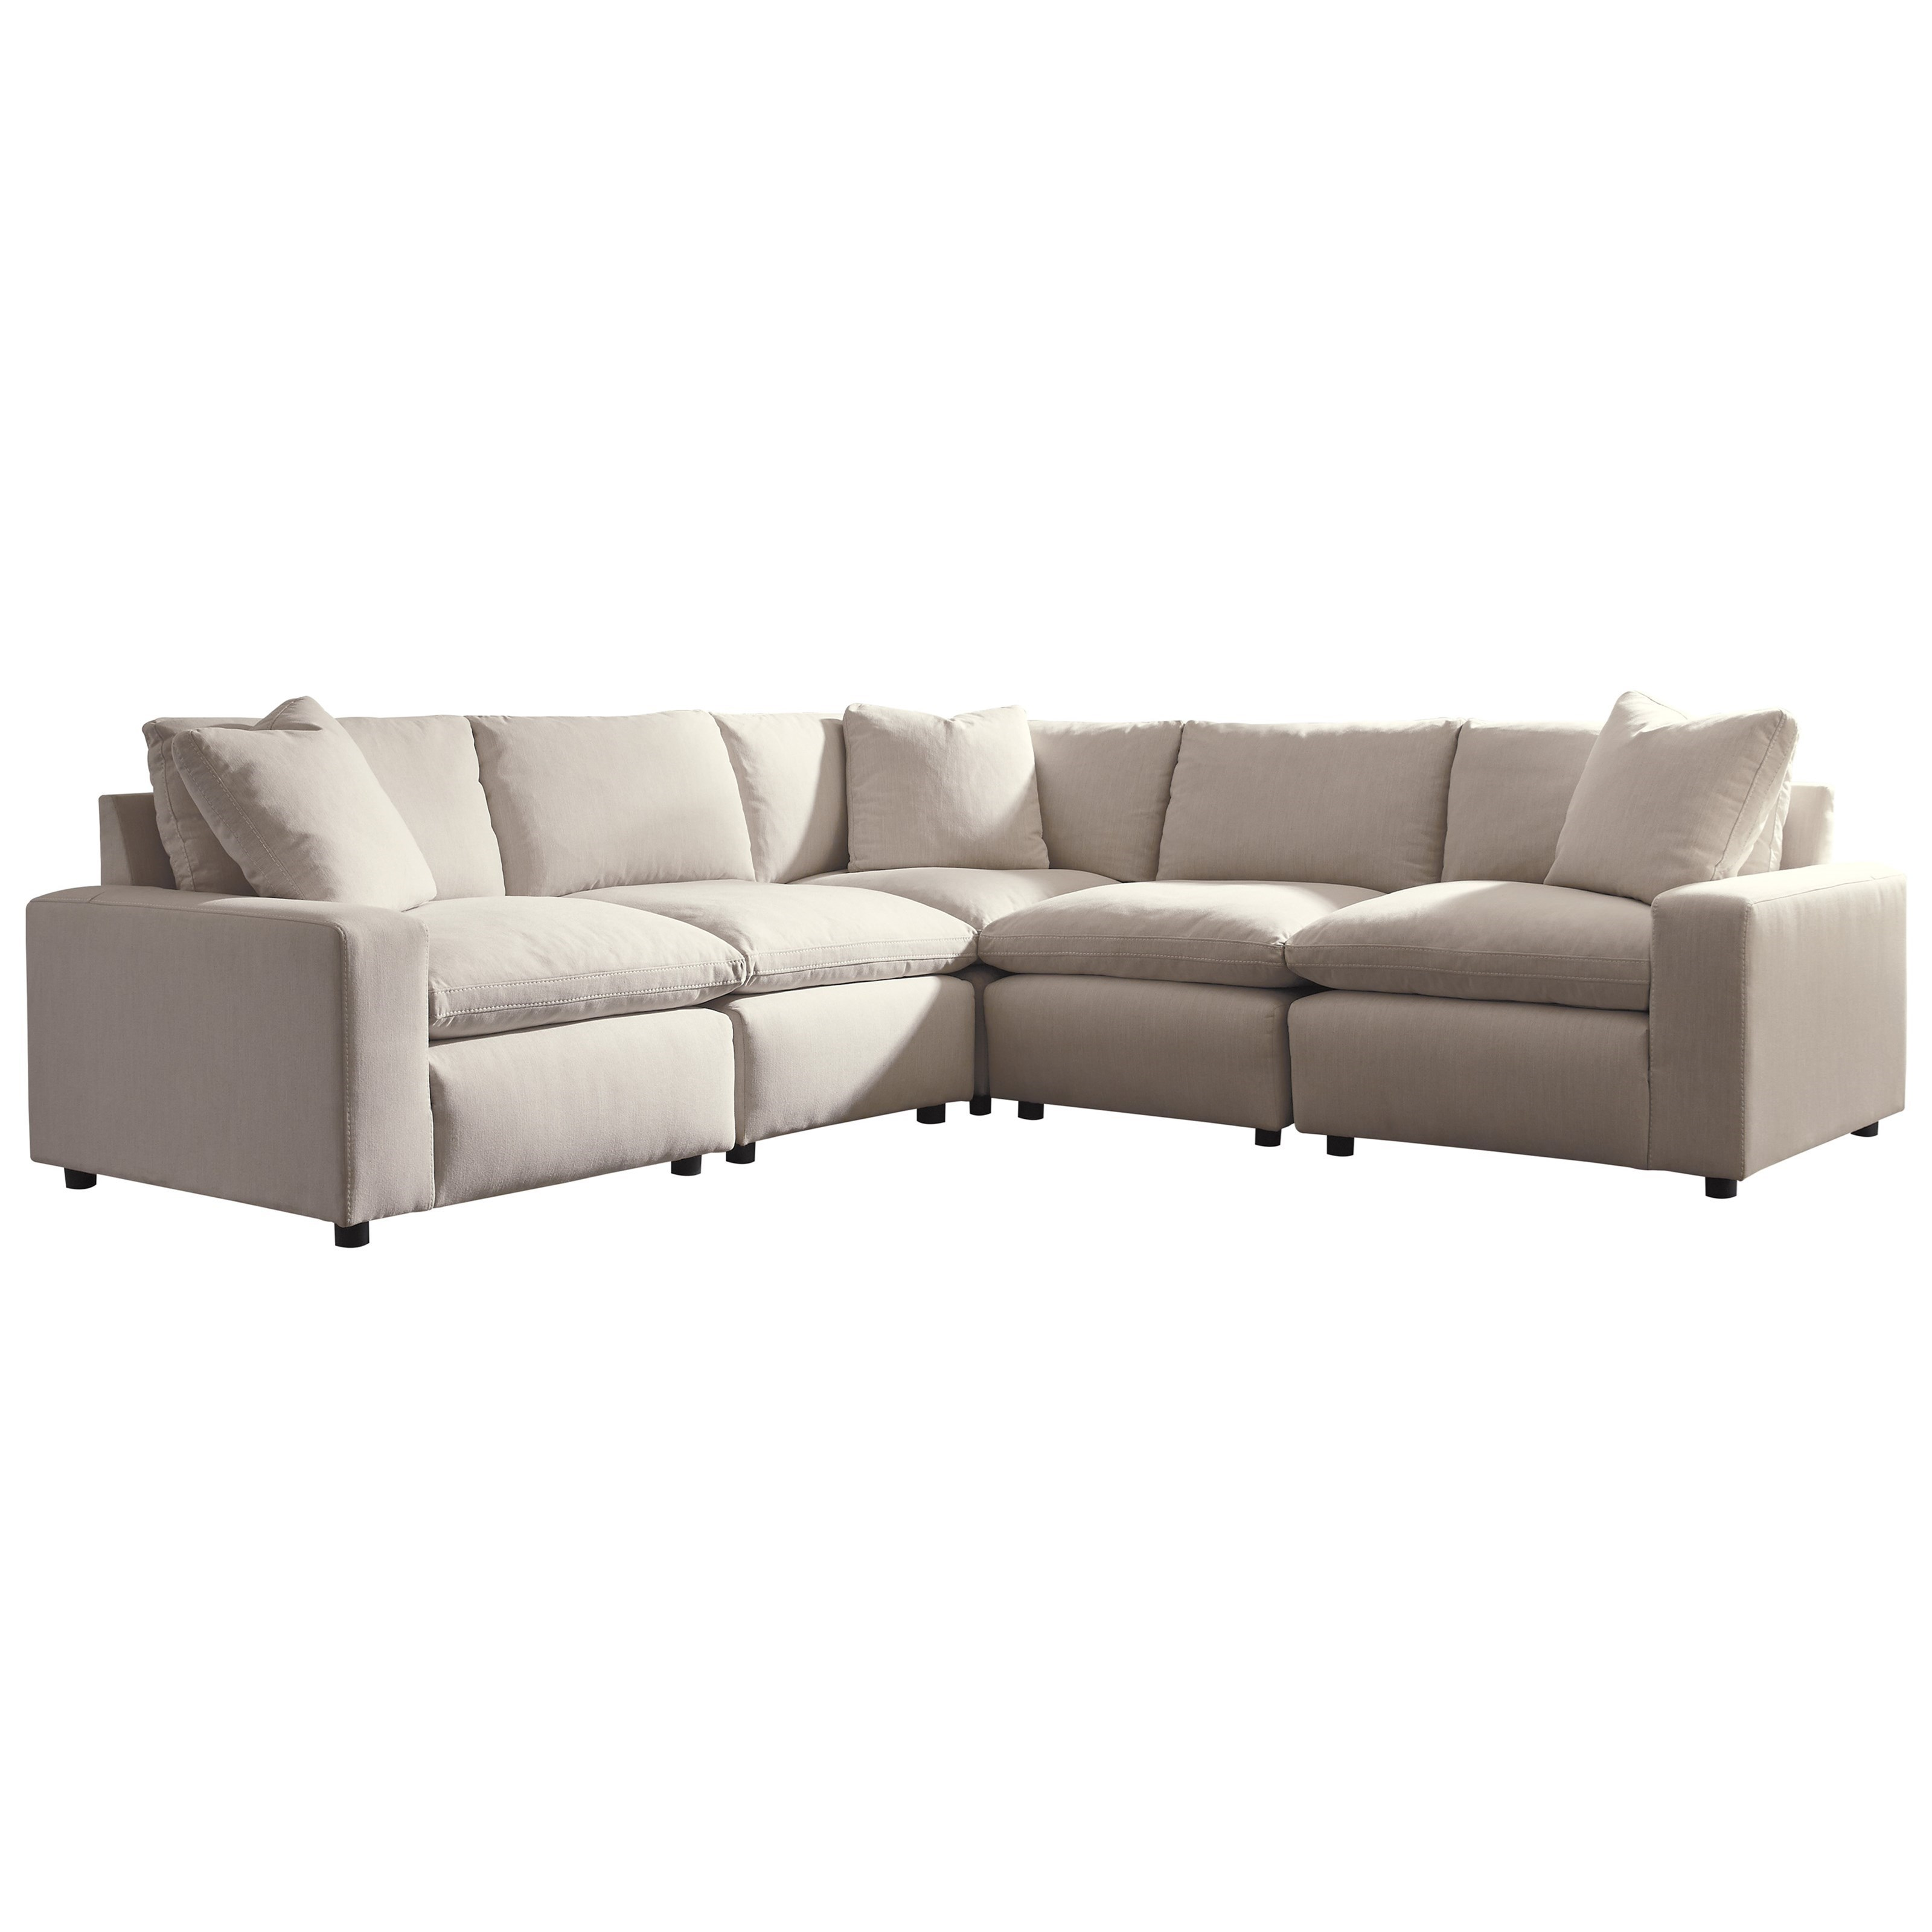 Savesto 5-Piece Sectional by Signature Design by Ashley at Beck's Furniture